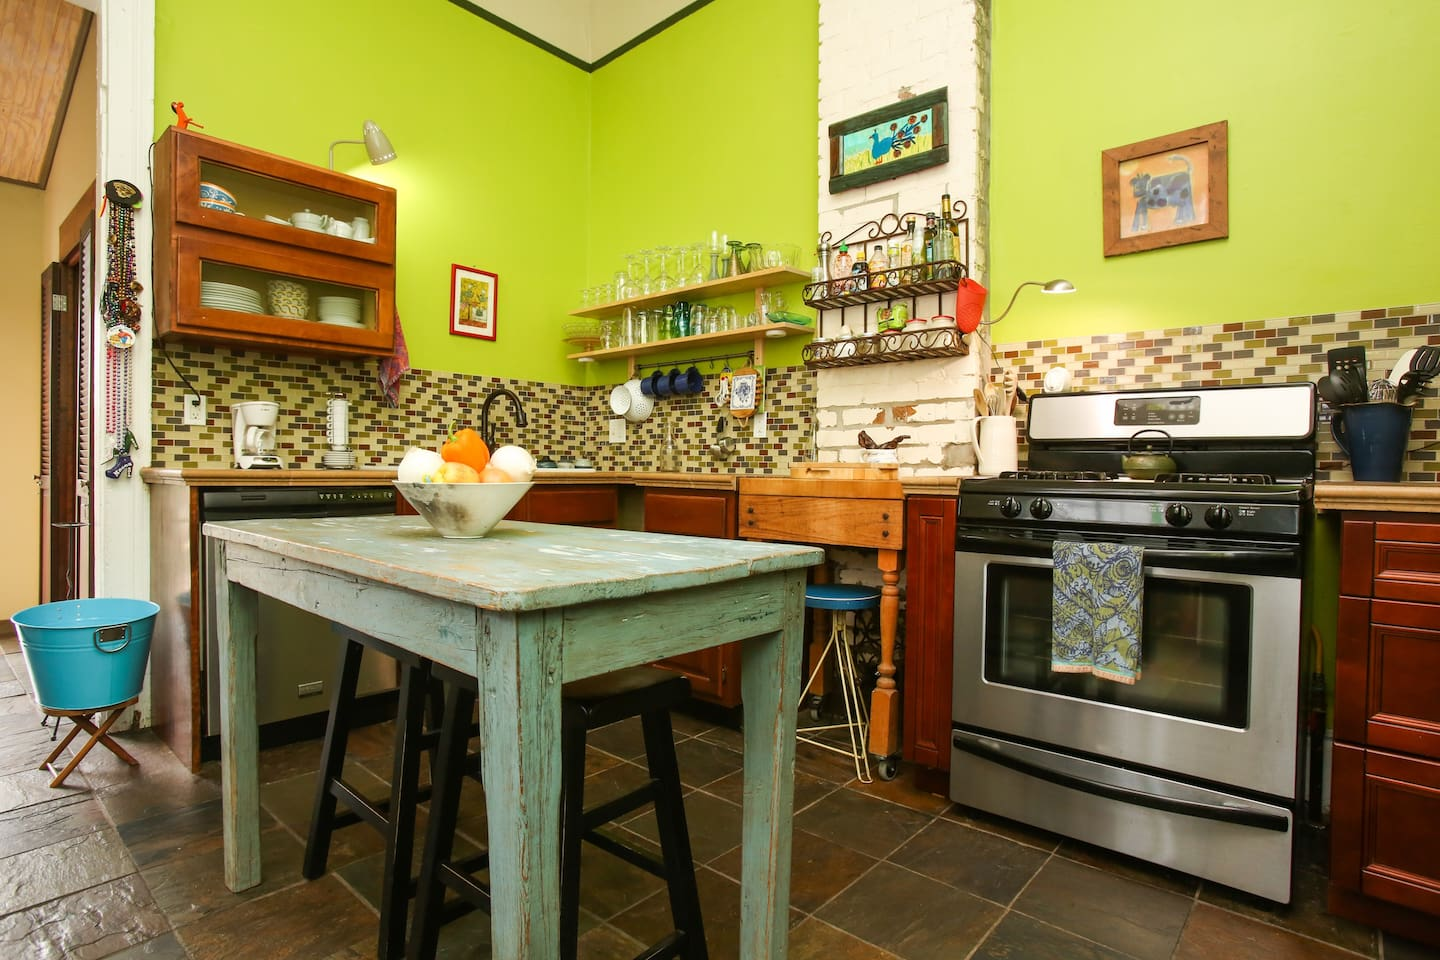 Enjoy a cozy breakfast in the kitchen at the farm table/island.